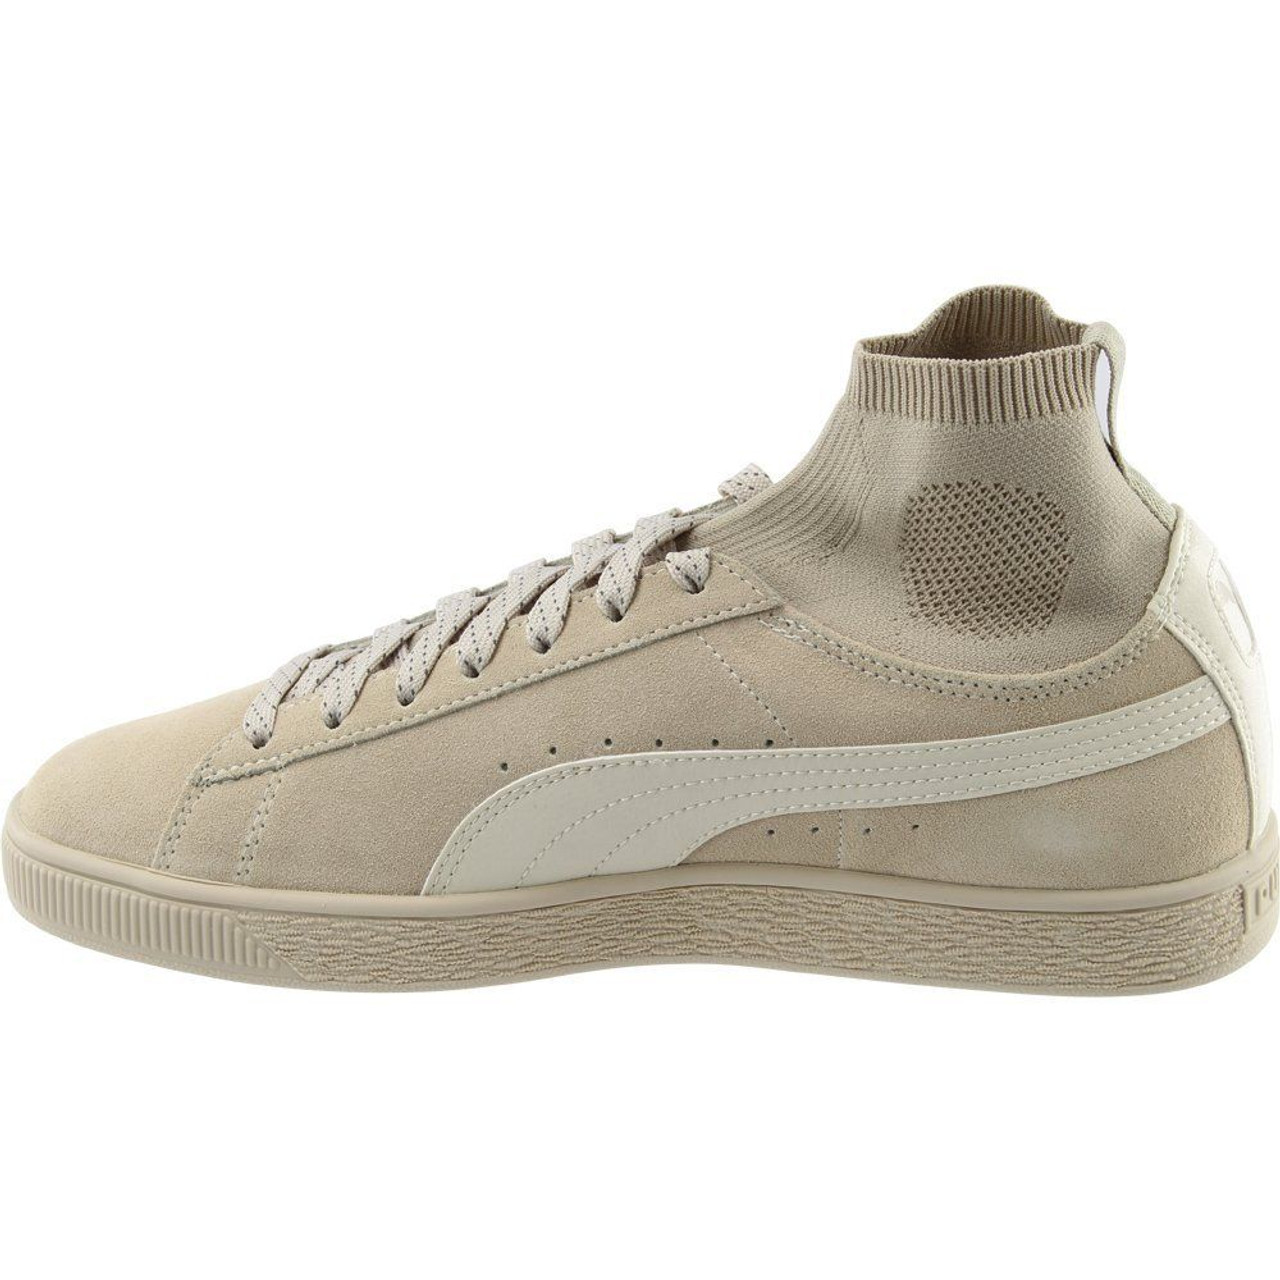 sports shoes 9cdef 76ccf PUMA Mens Suede Classic Sock Athletic & Sneakers Beige~pp-667c1e50